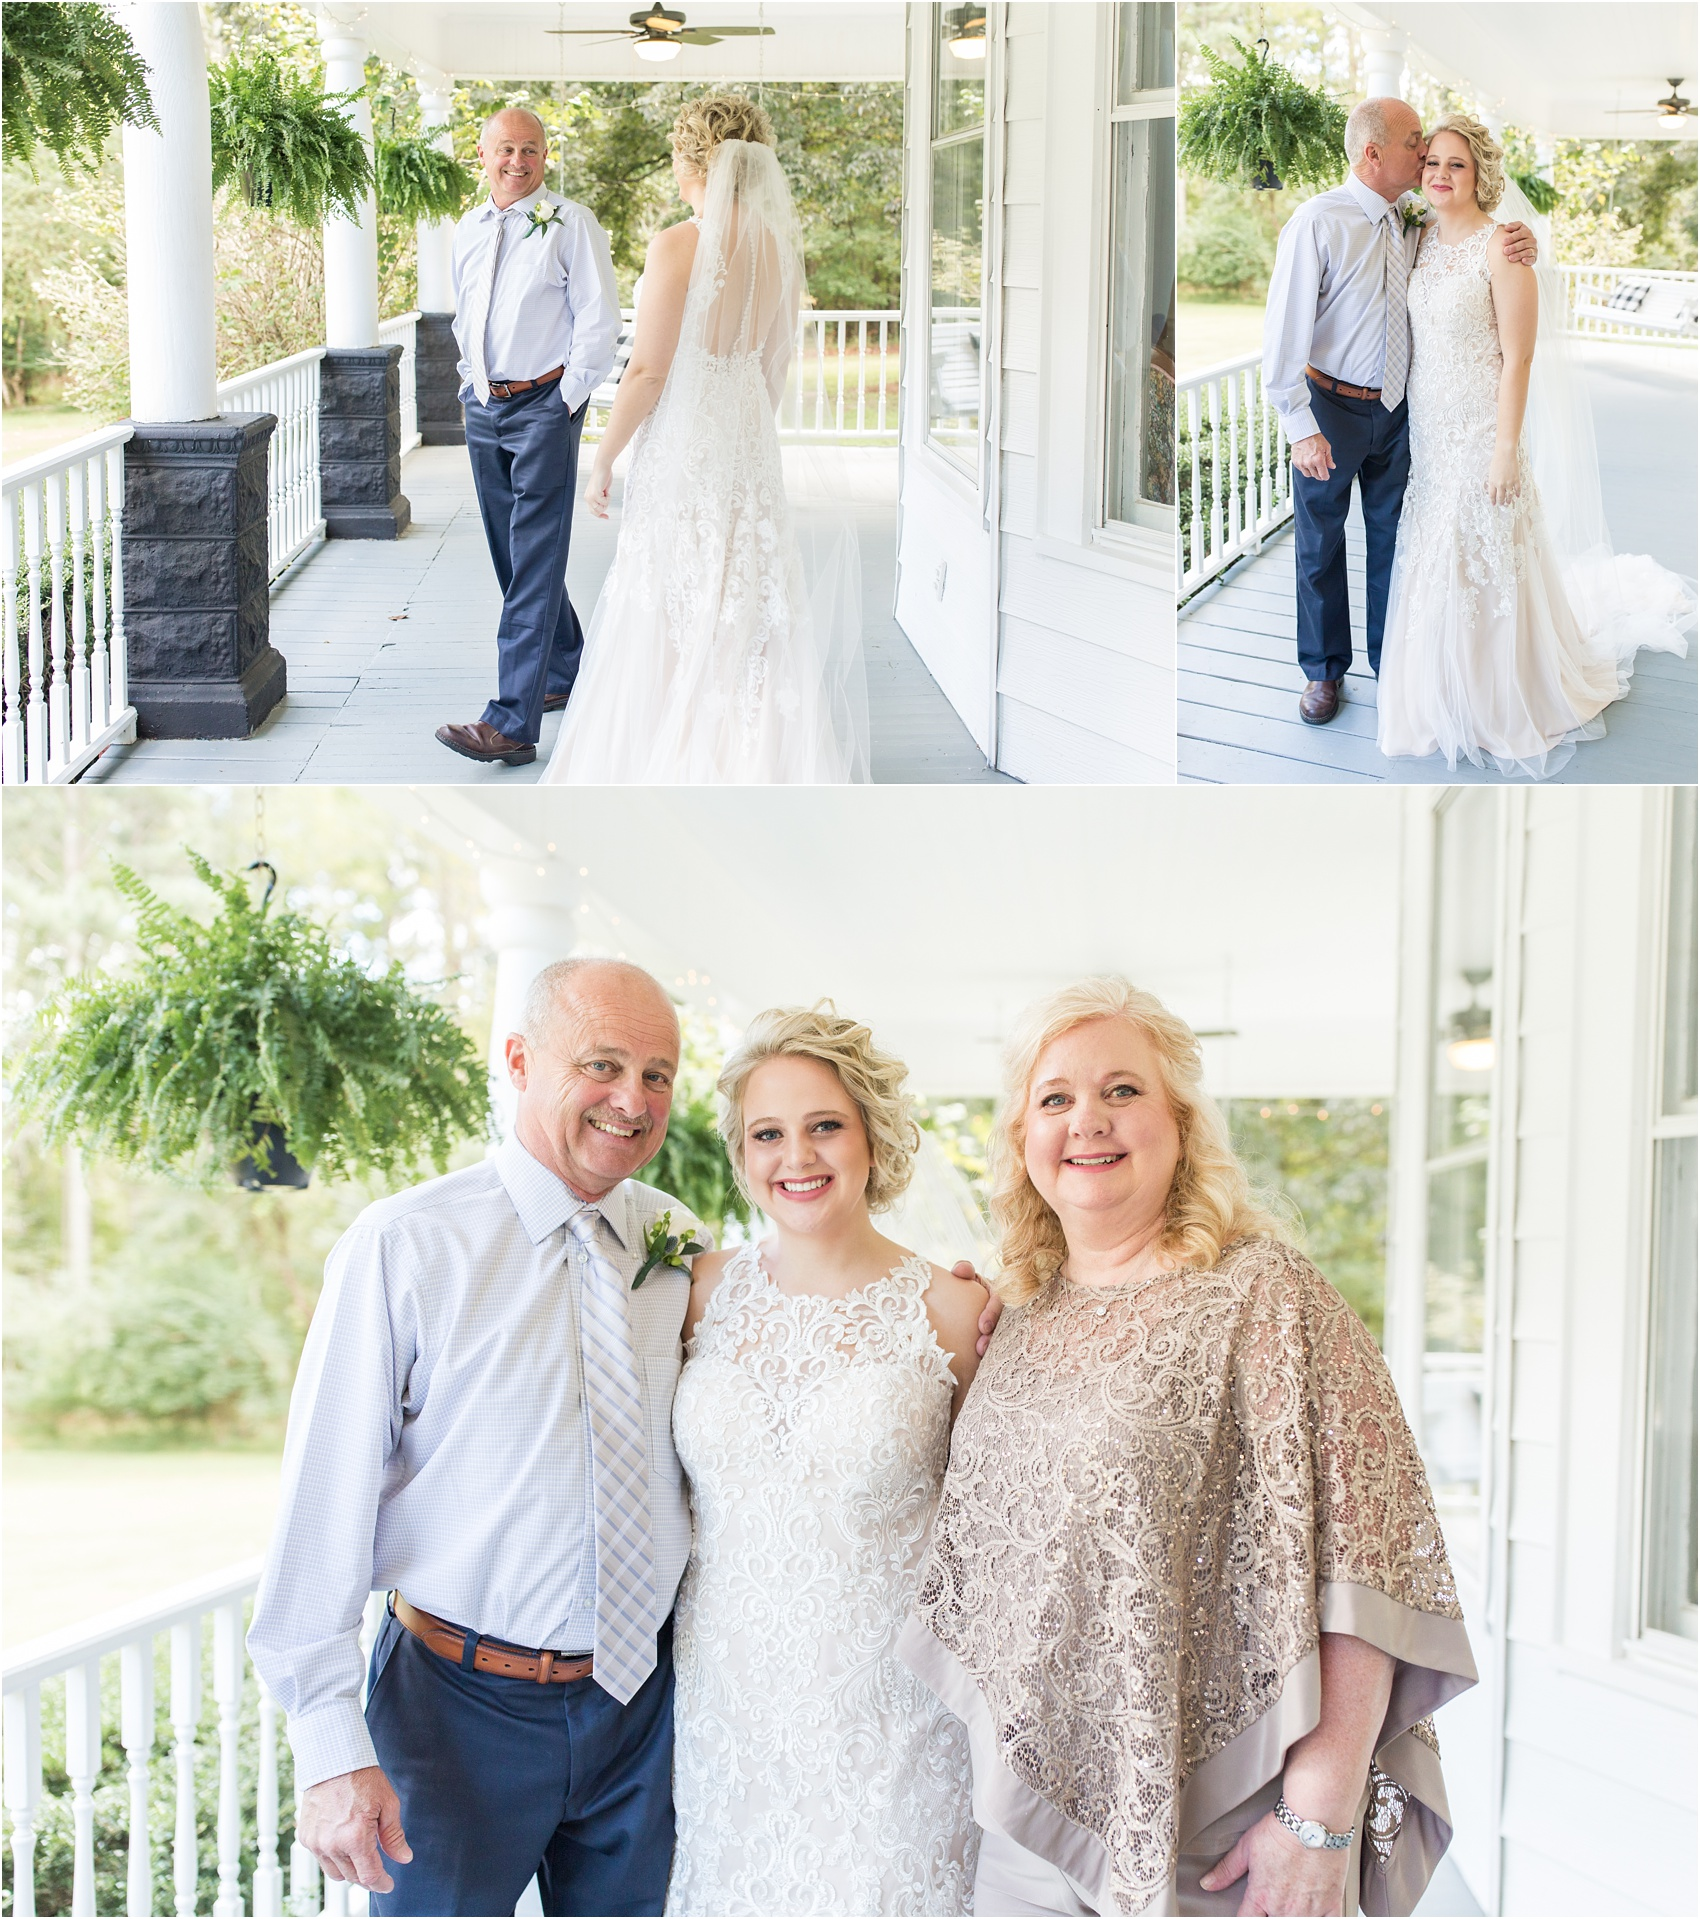 Savannah Eve Photography- Cannon-Gossett Wedding- Sneak Peek-16.jpg